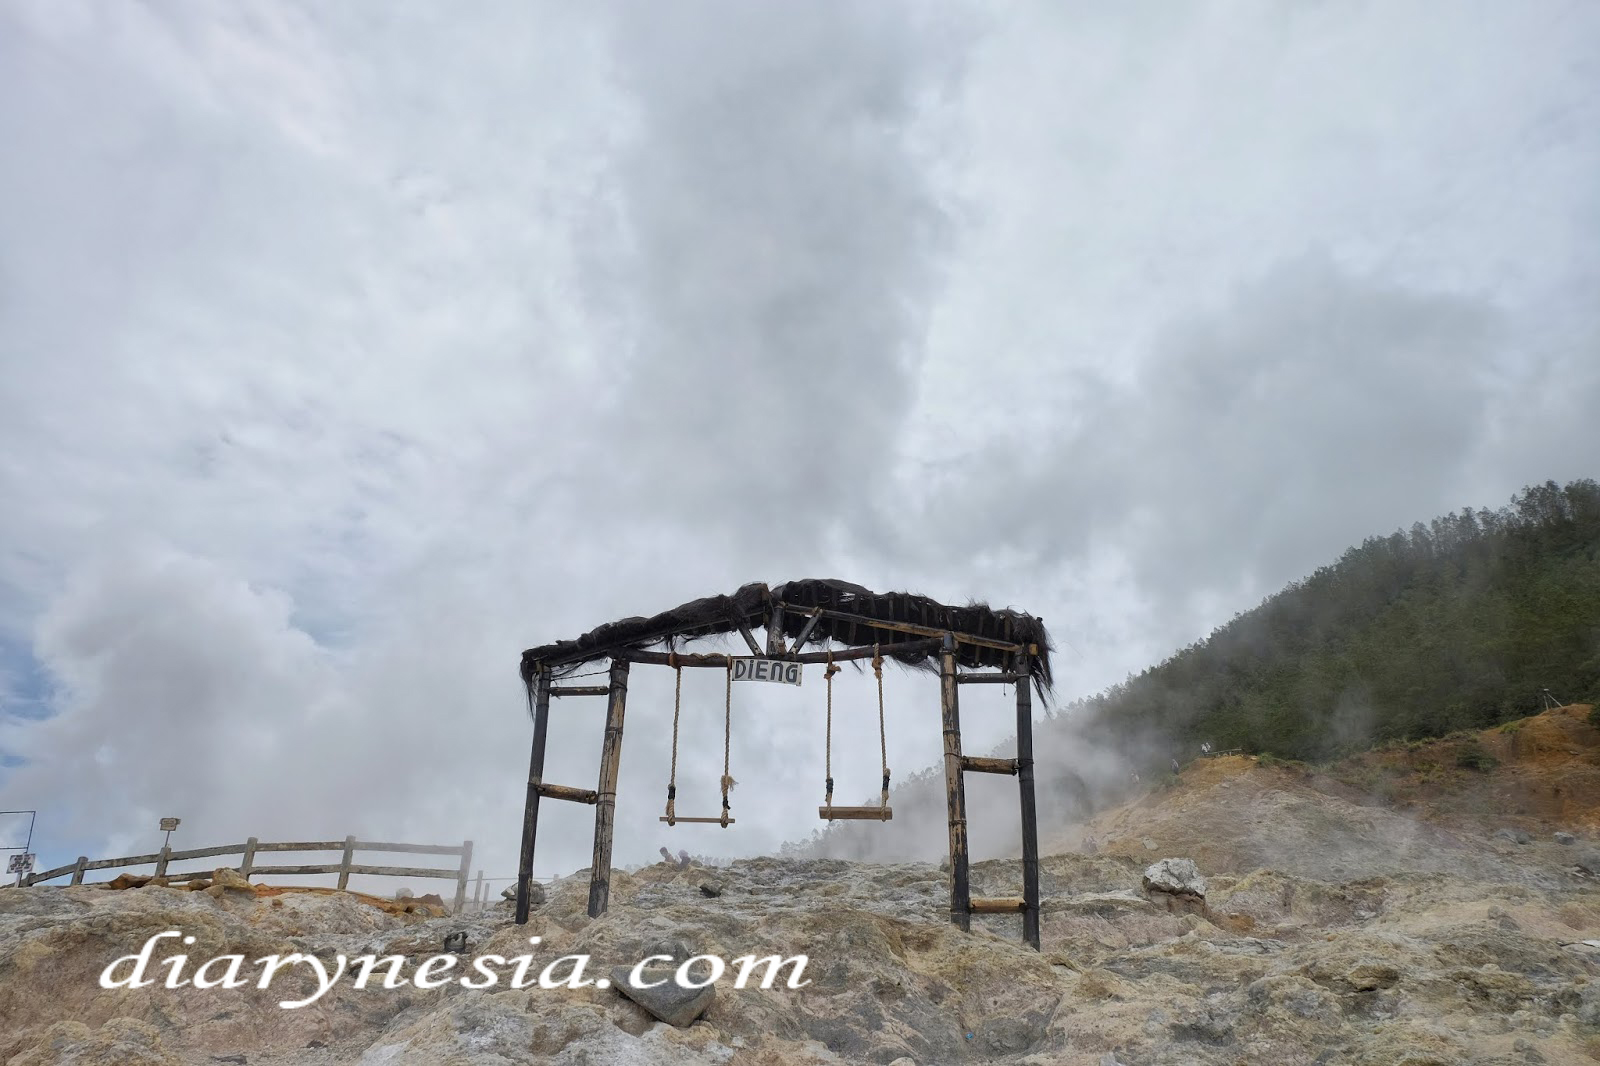 Dieng plateau tourism, reasons to visit dieng plateau, best points of interest in dieng, diarynesia